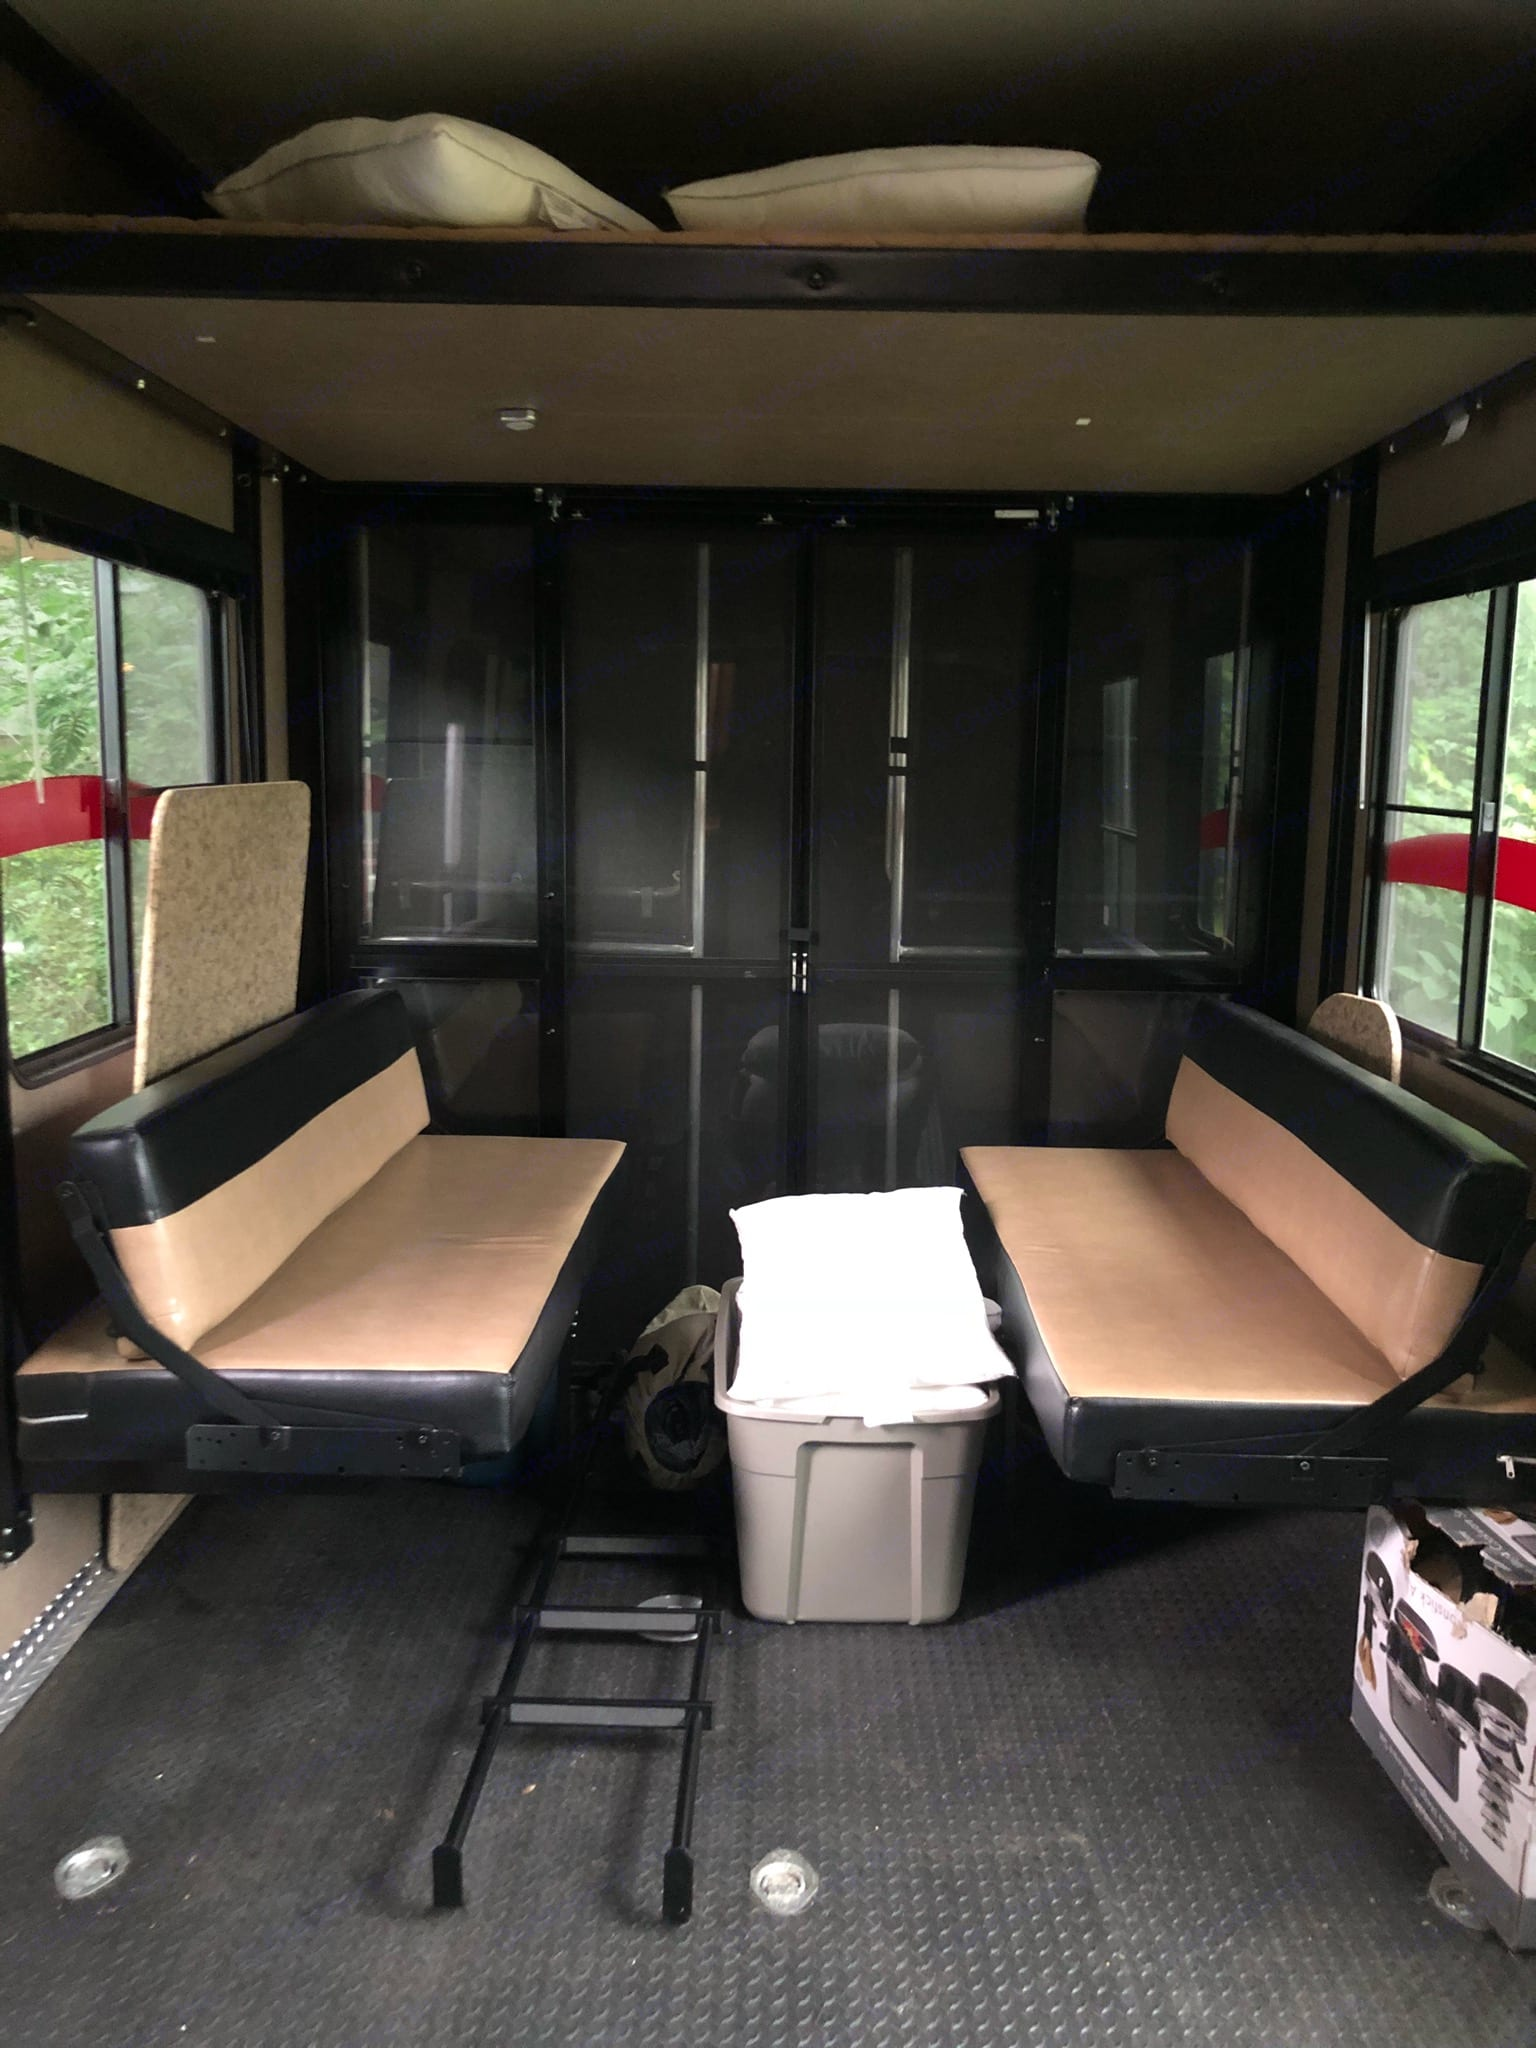 Garage has two queen size beds, with the bottom one being easily turned into a table with benches.. Heartland Road Warrior 2013